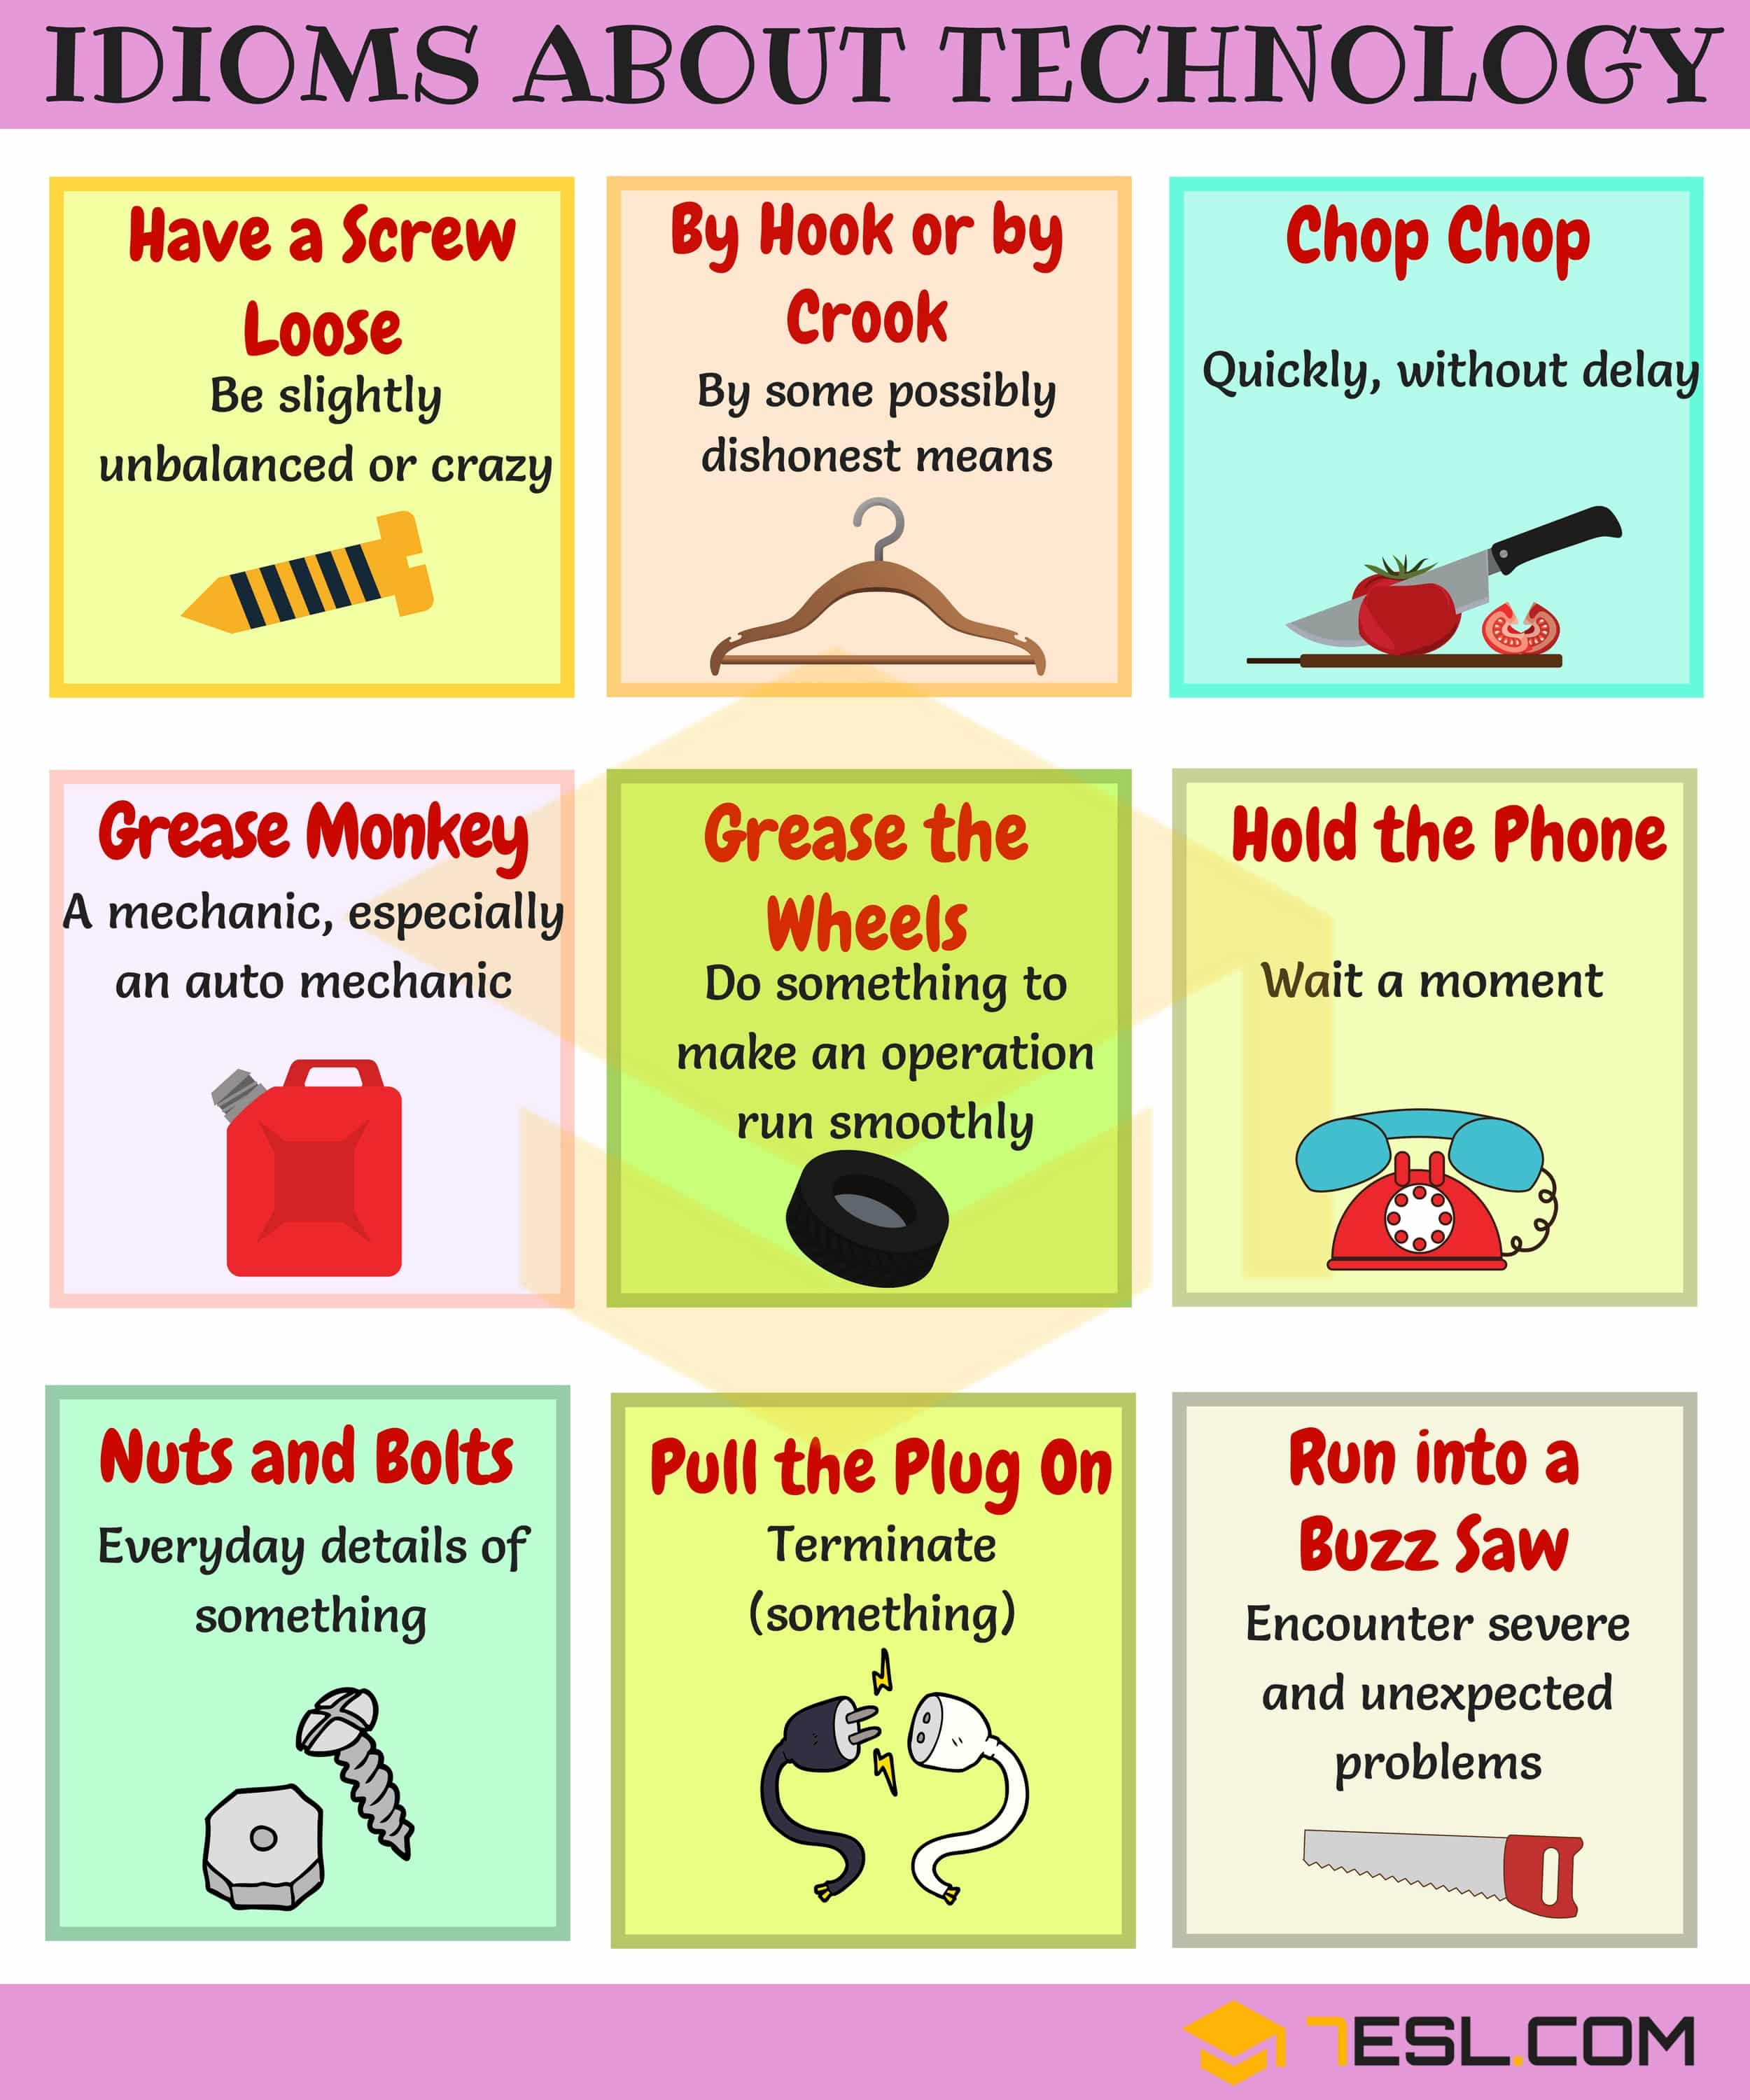 idioms about Technology